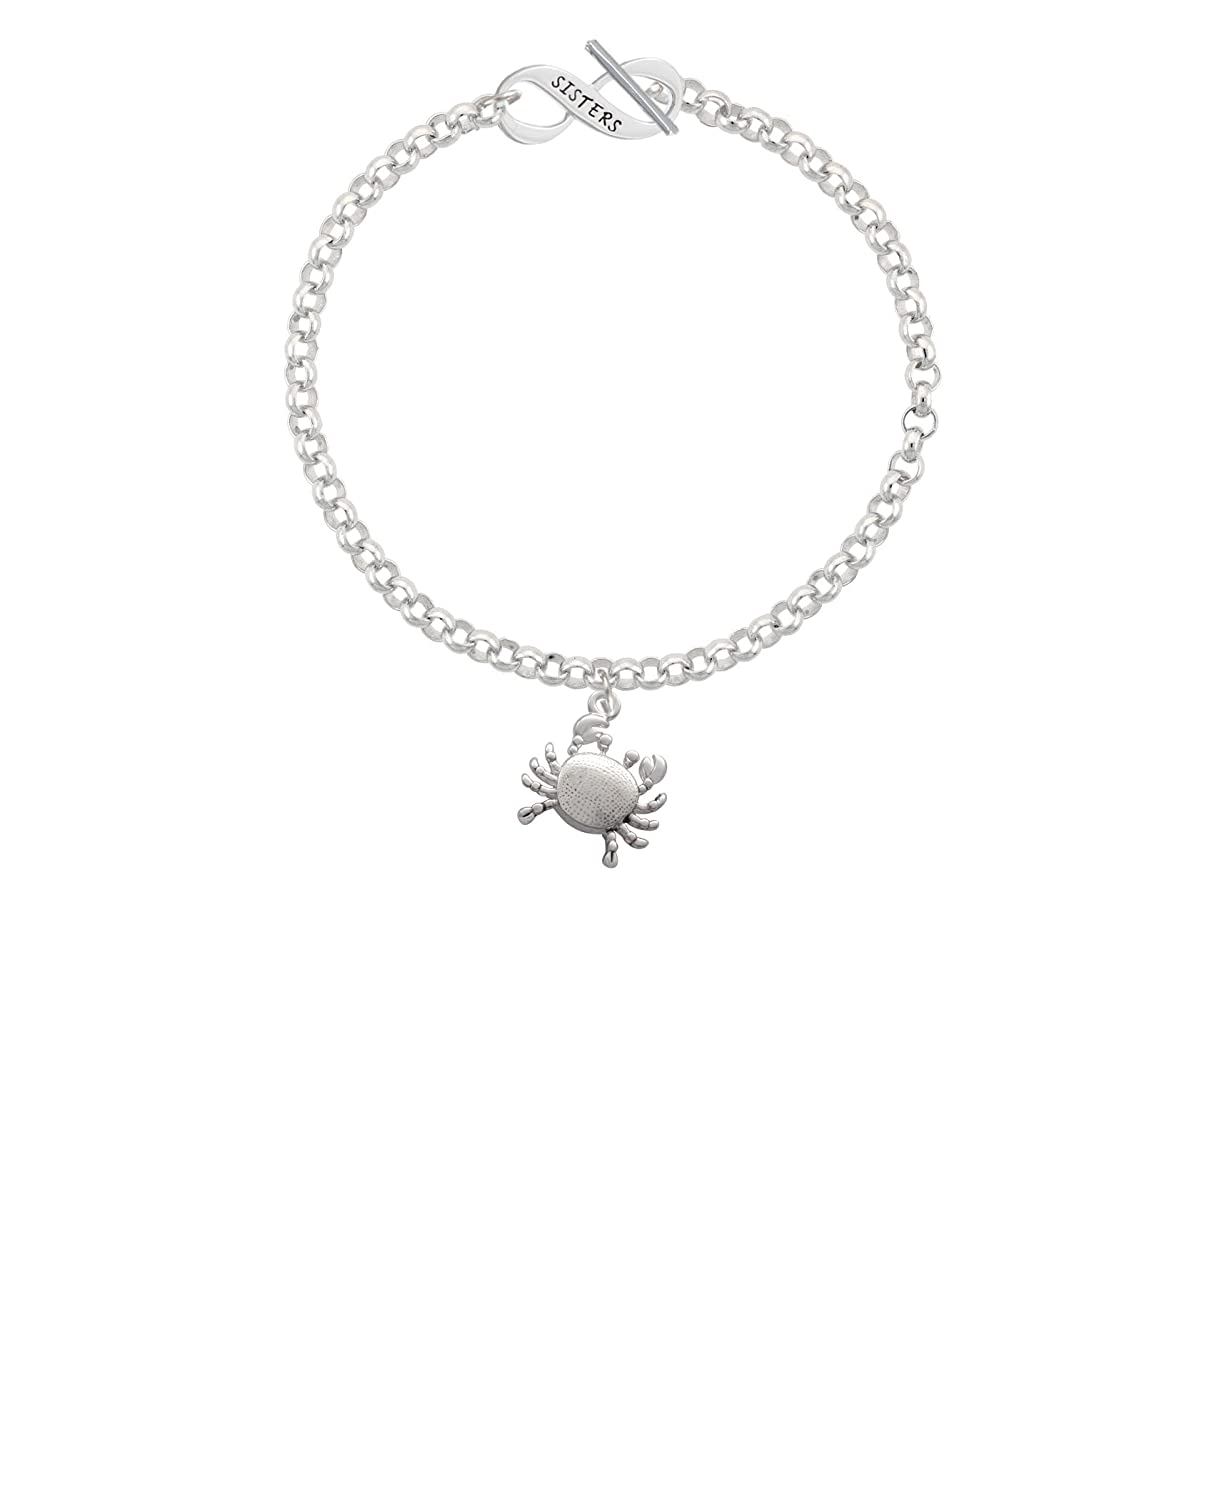 8 Silvertone Antiqued Crab Sisters Infinity Toggle Chain Bracelet